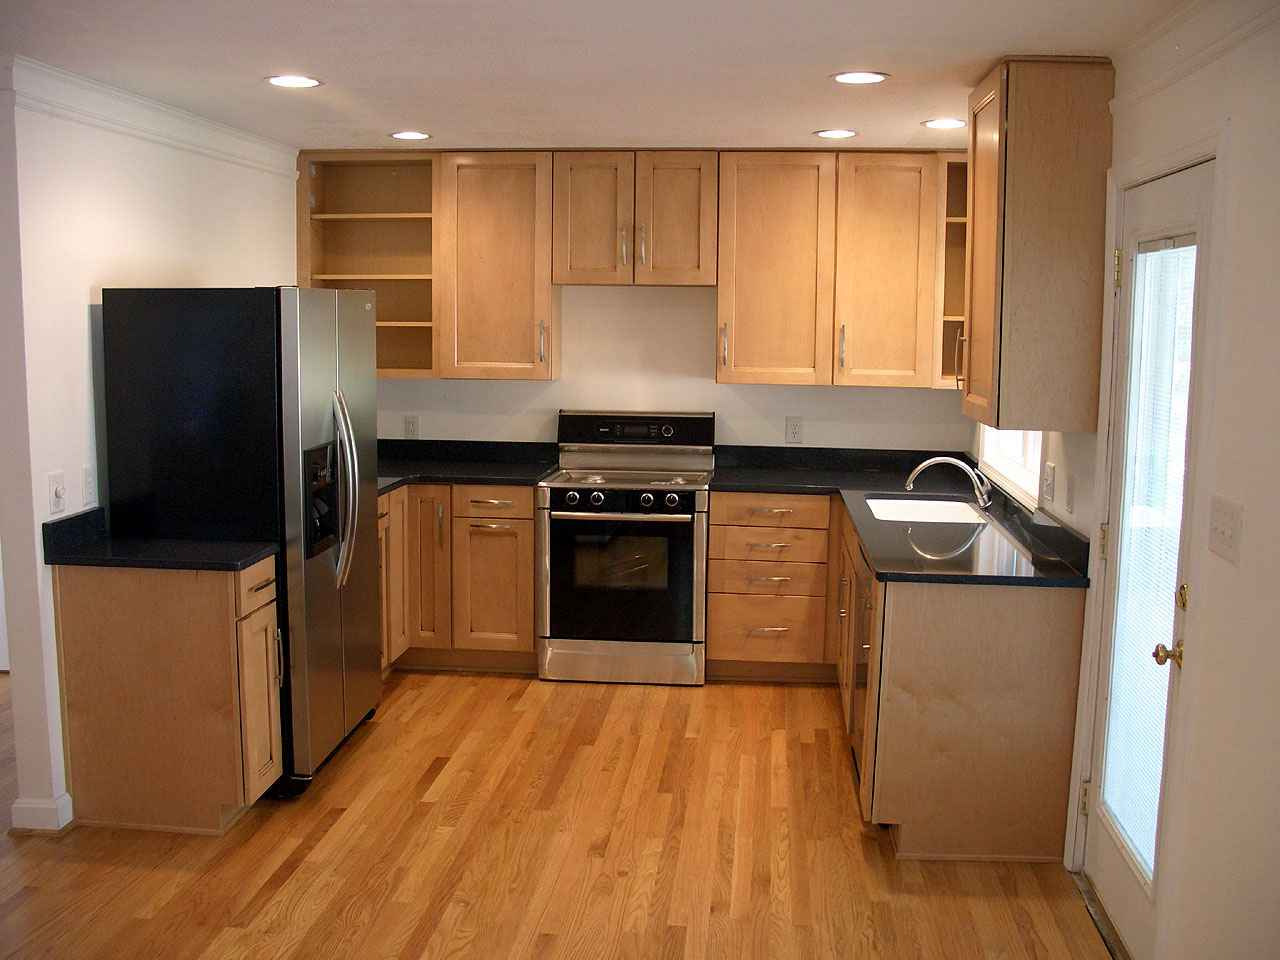 Cheap cabinets for kitchens shopping tips for Wood kitchen cabinets